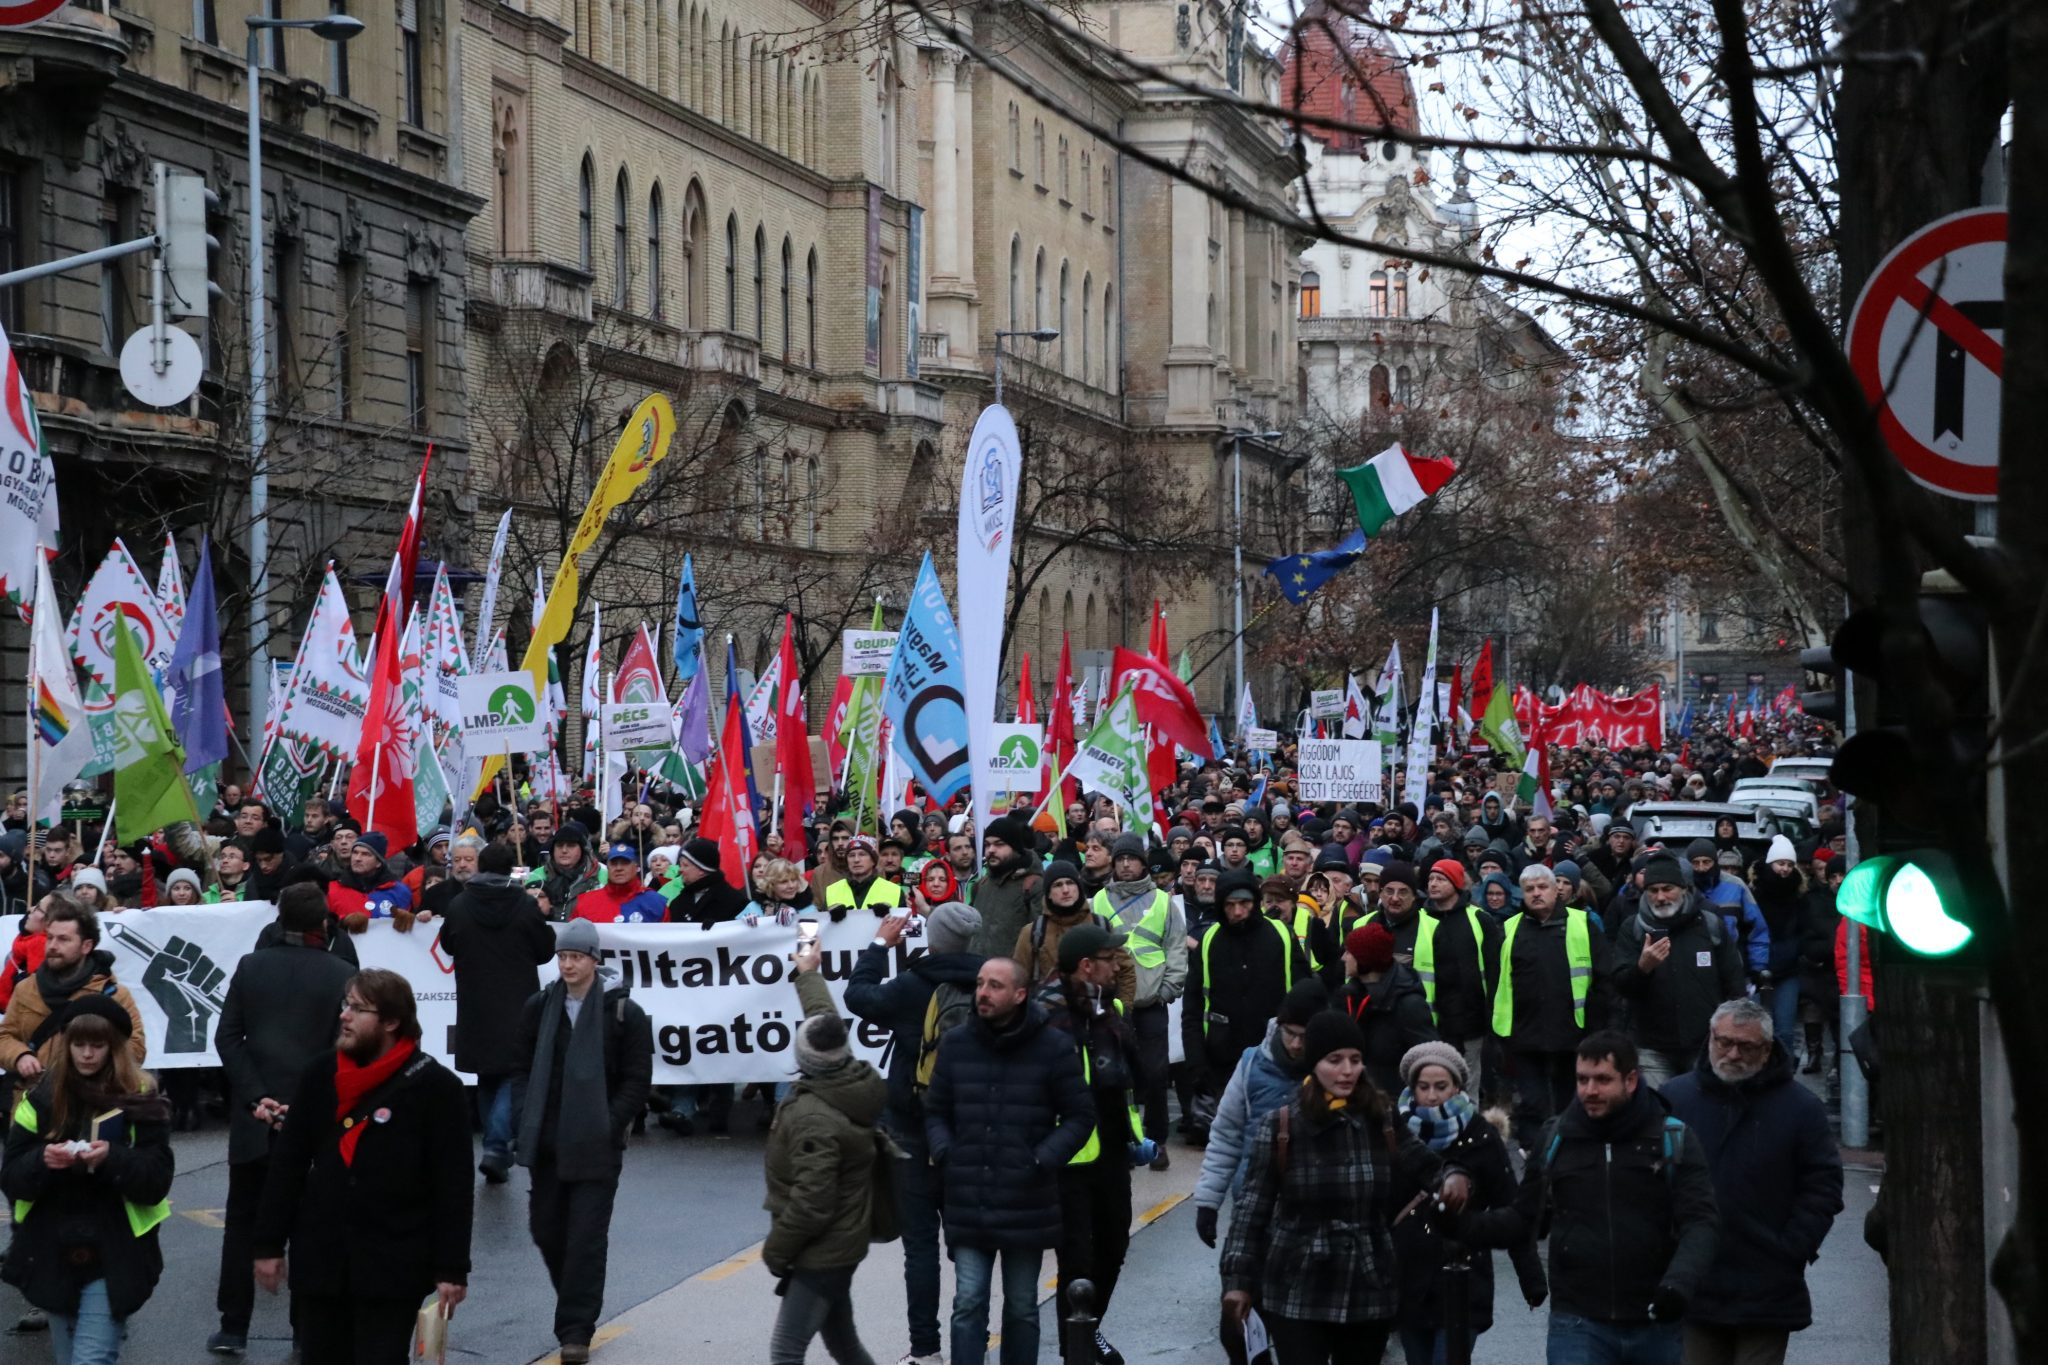 Anti-government Demonstration in Budapest